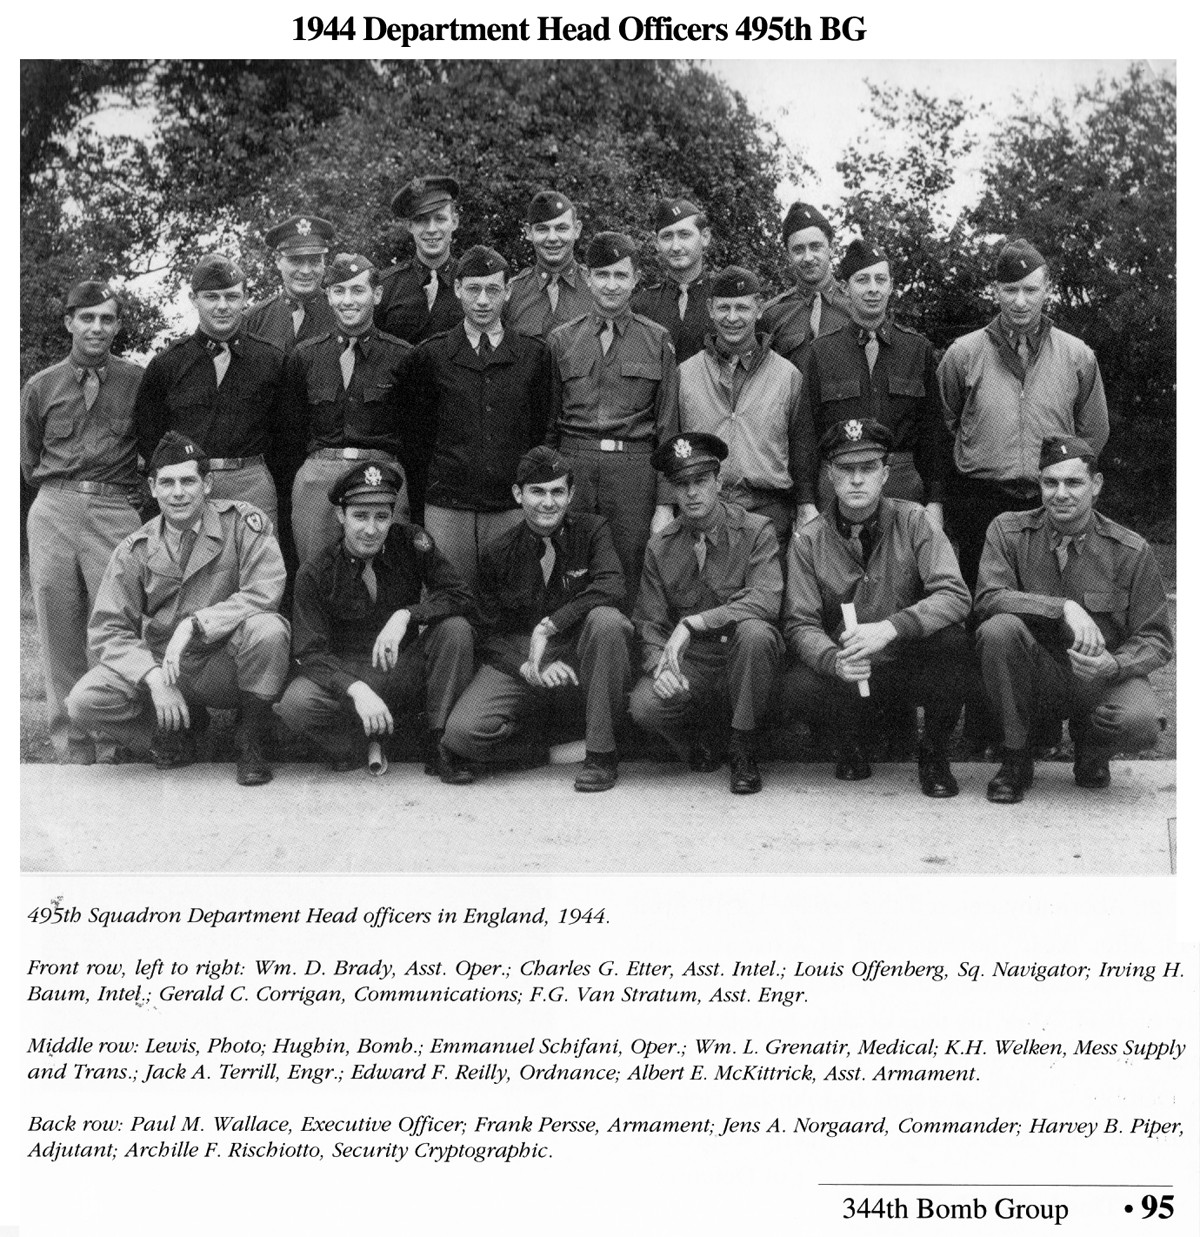 1944 Department Head Officers 495th BG